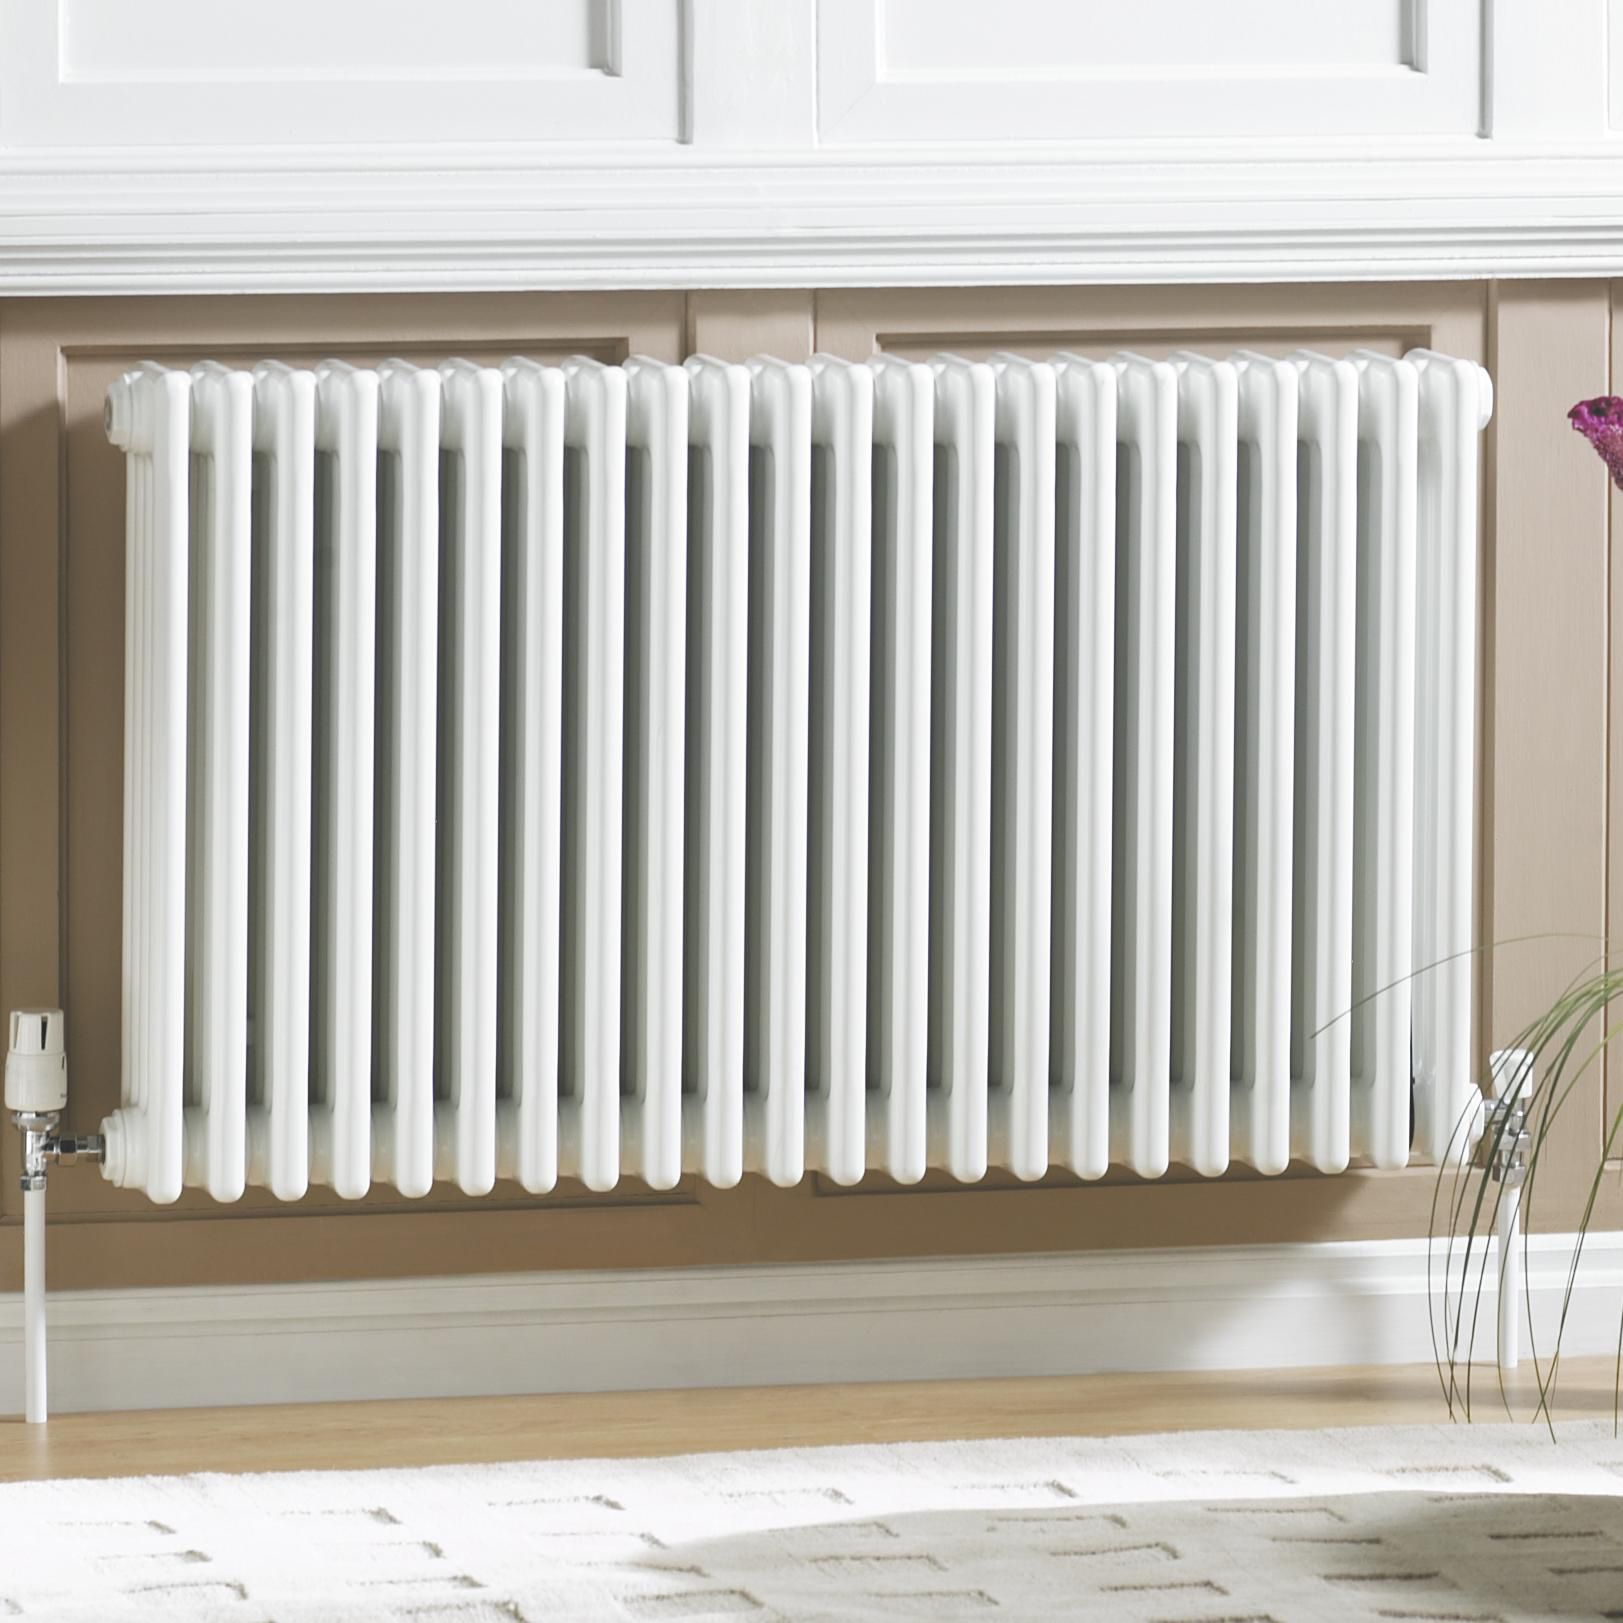 Acova 2 Column radiator, White (W)812mm (H)600mm